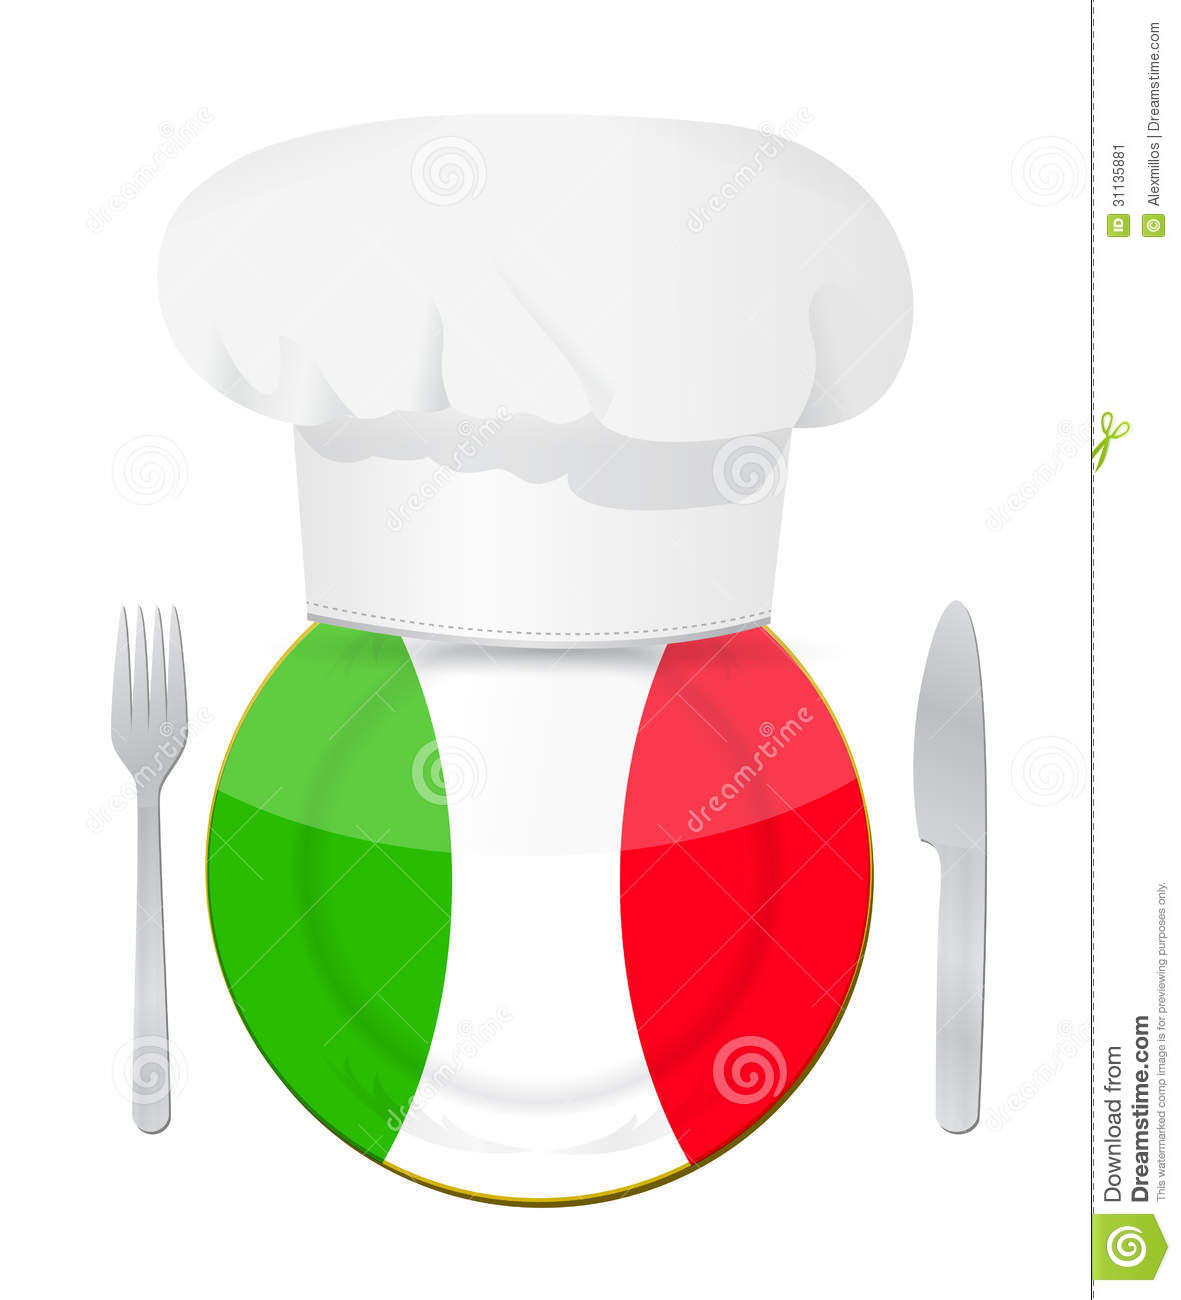 Italian cuisine concept illustration design stock image for Design cuisine